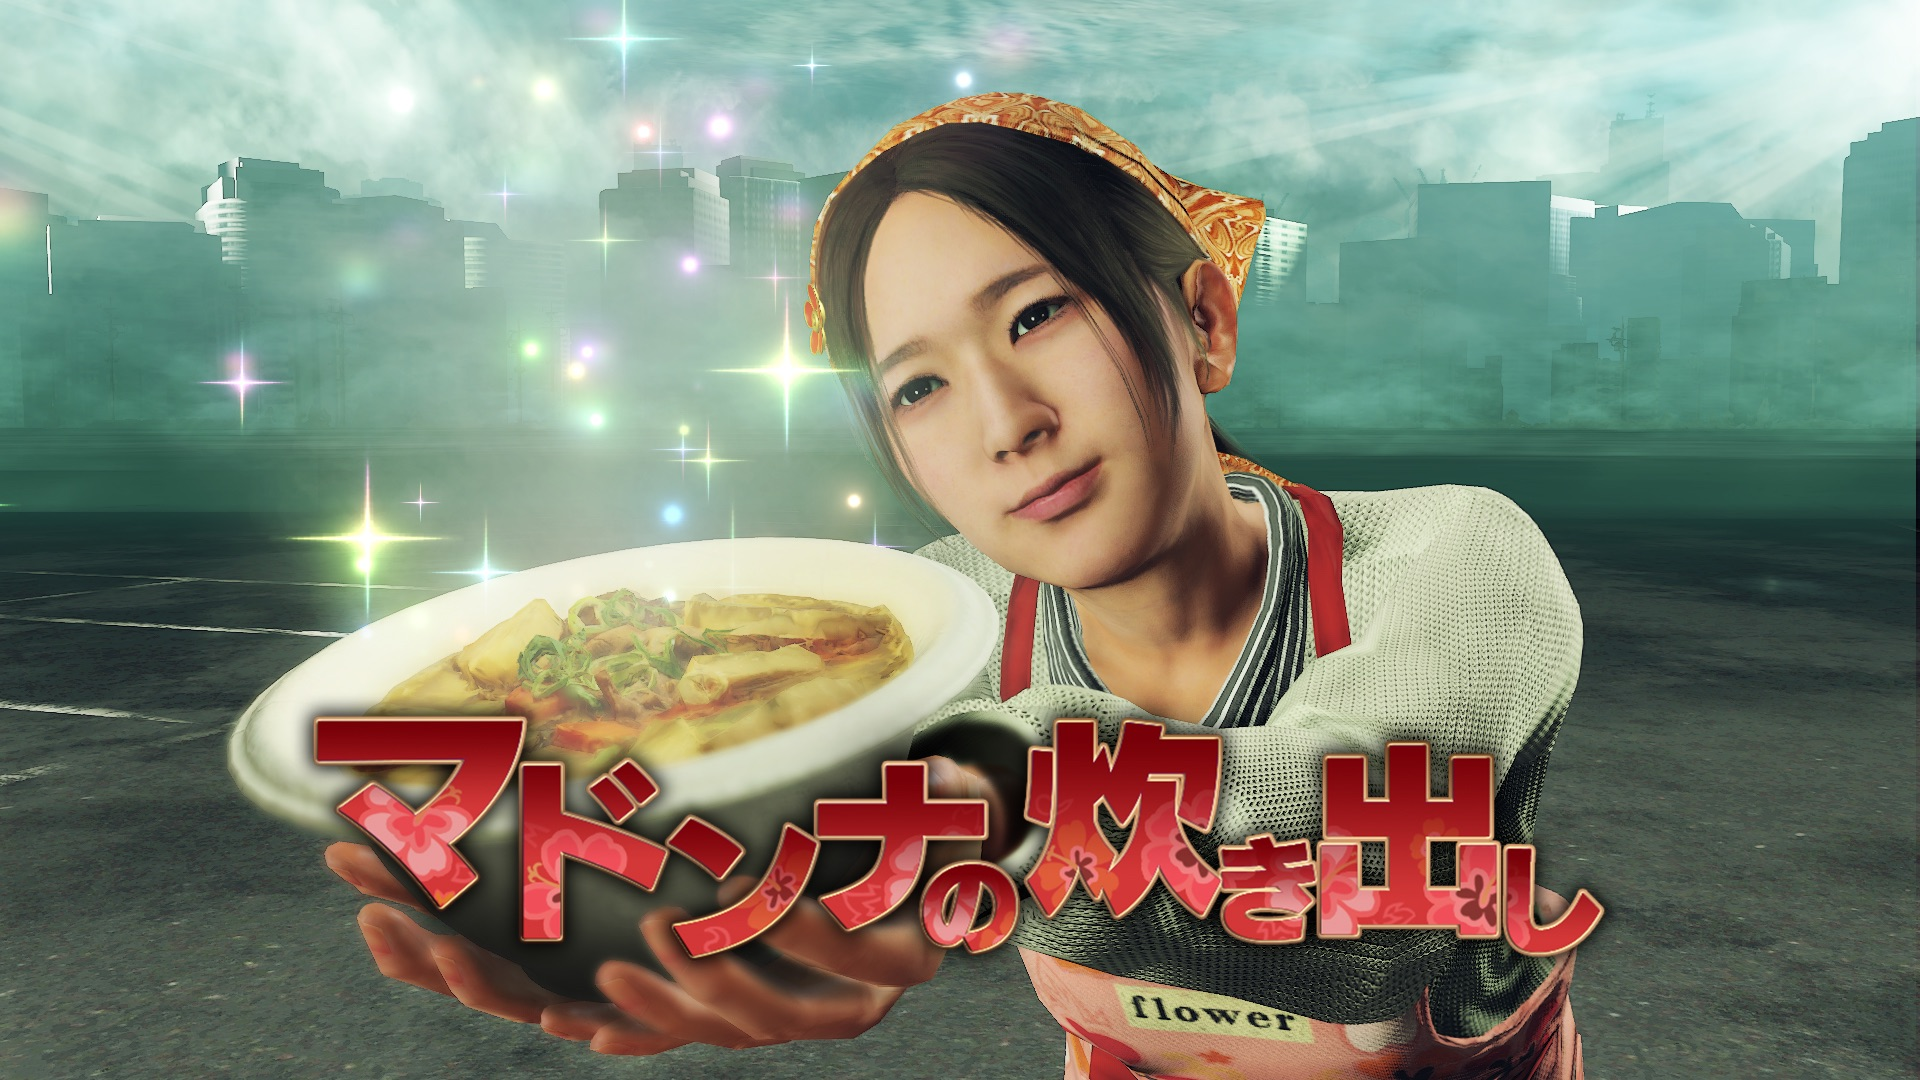 A woman serves a plate of food in Yakuza: Like a Dragon.